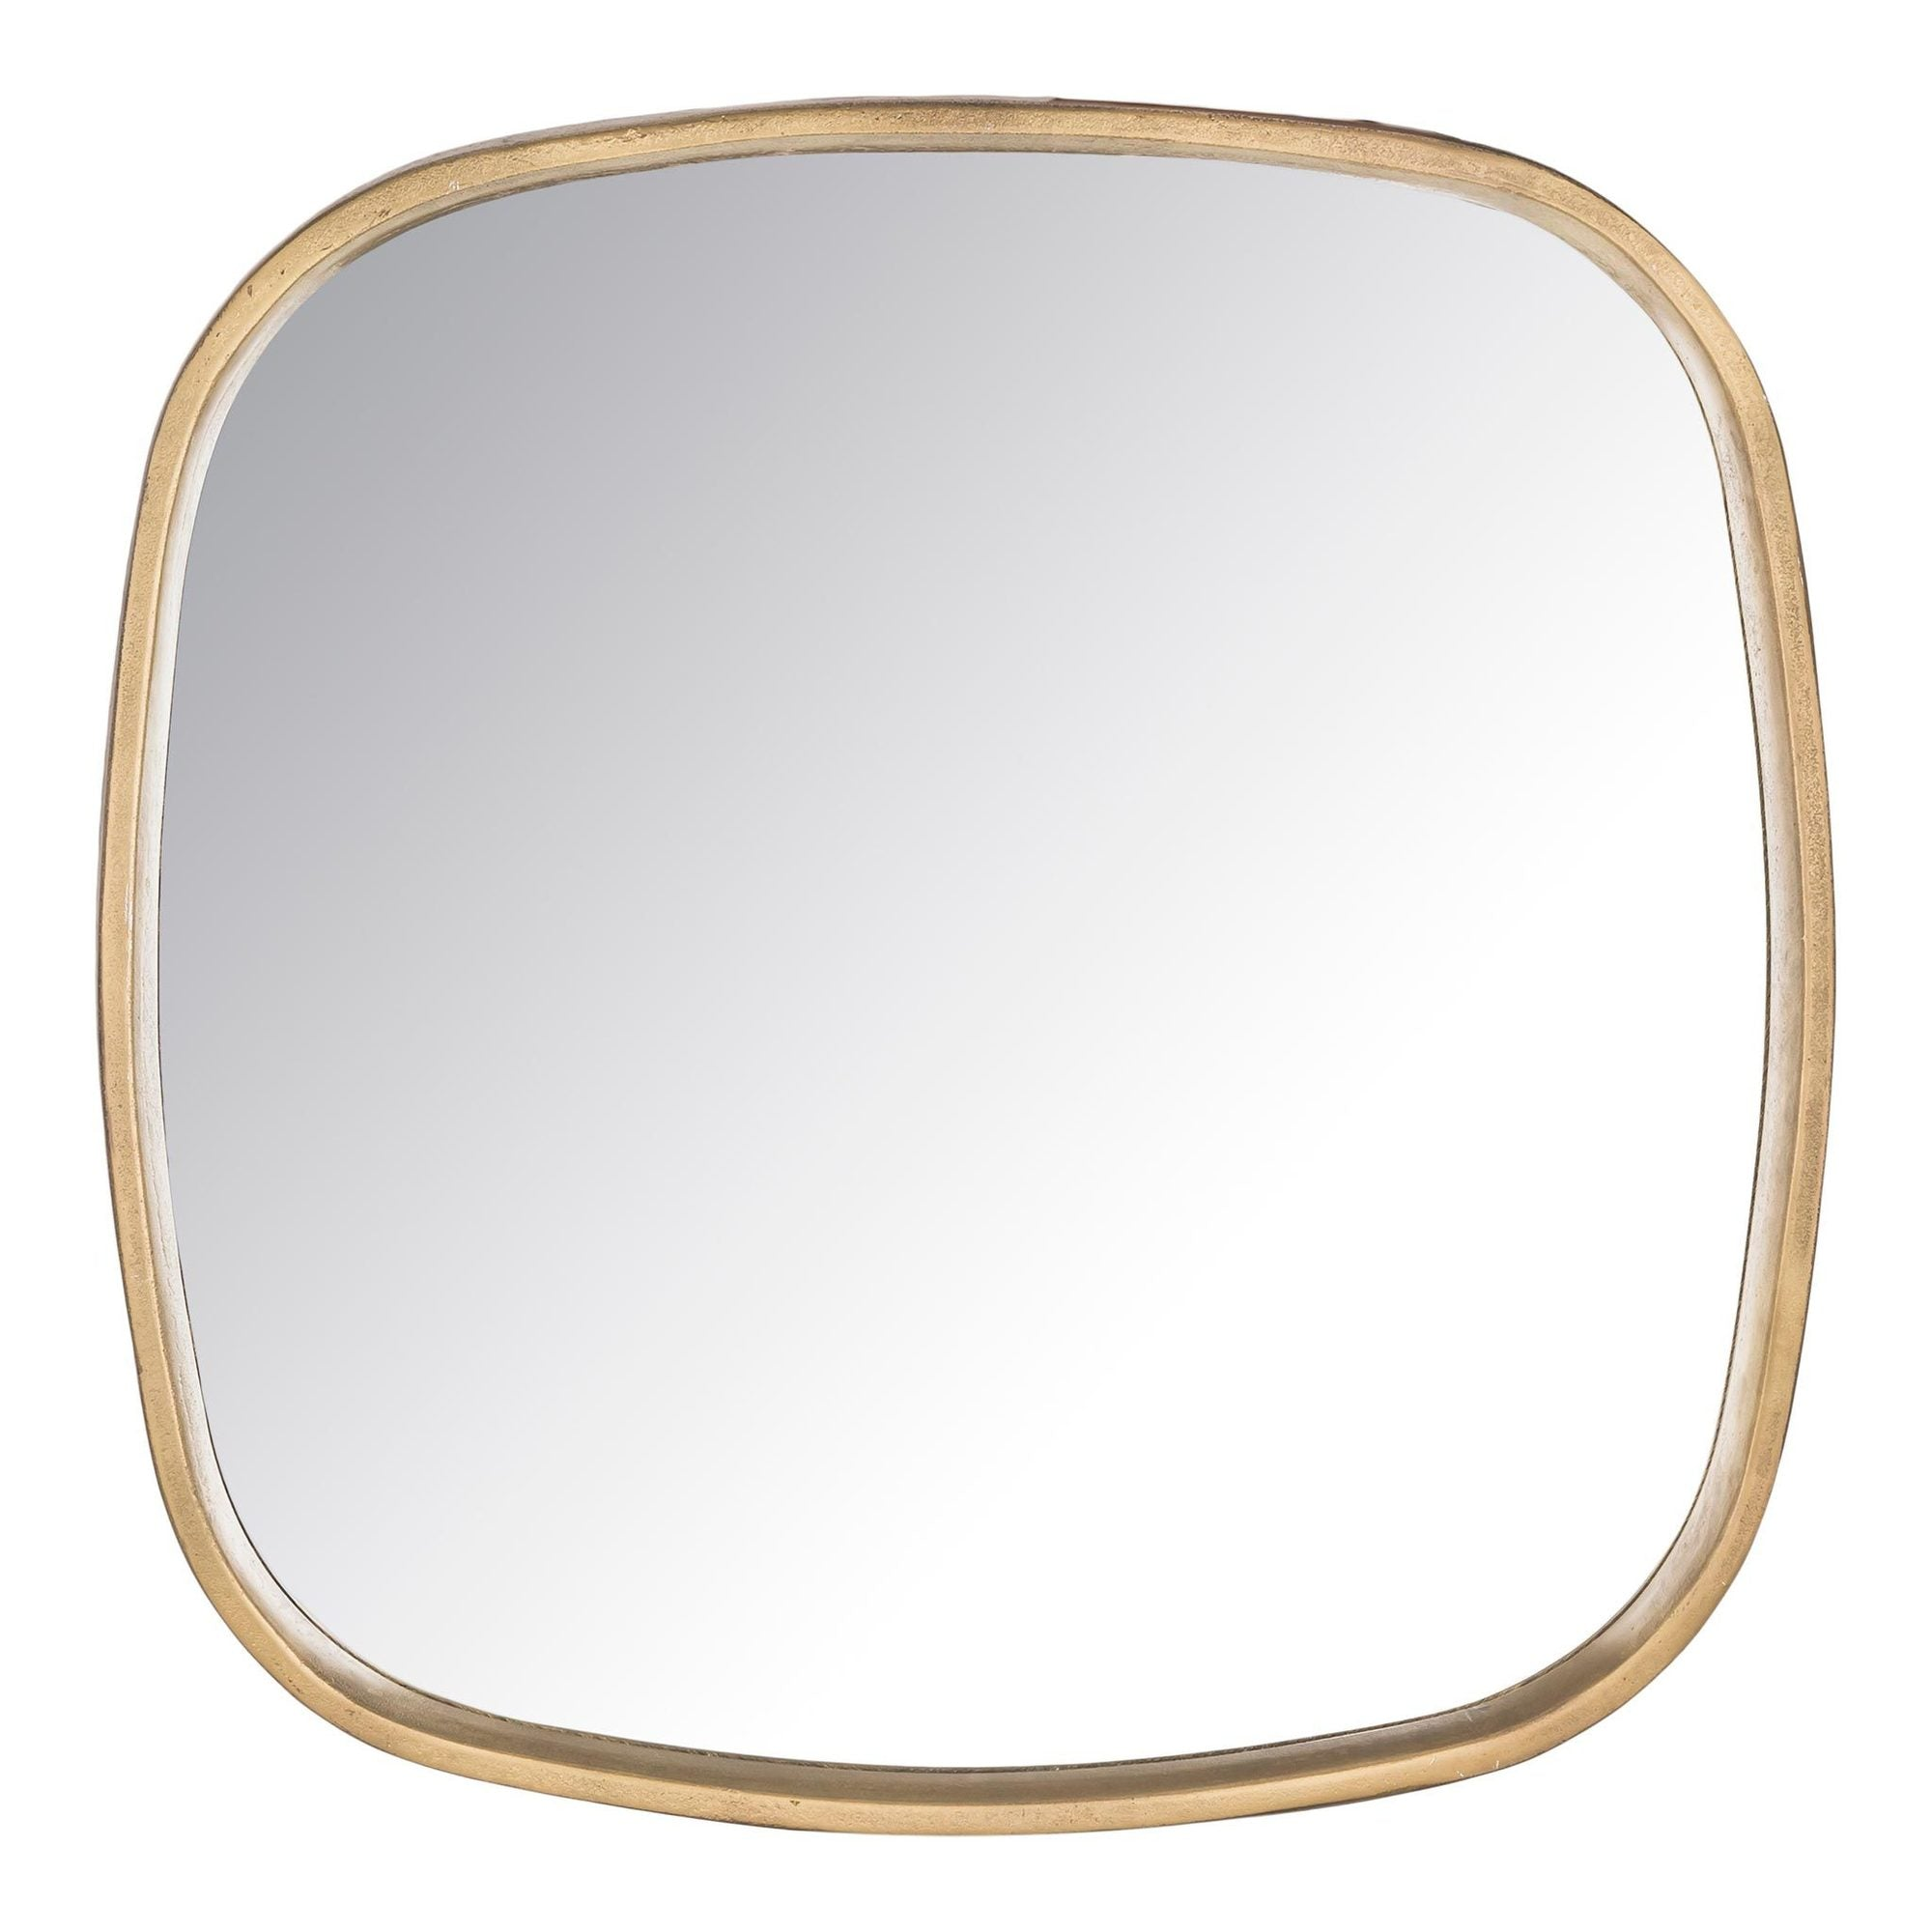 MOES-SIMONE MIRROR-Wall Mirrors-MODTEMPO